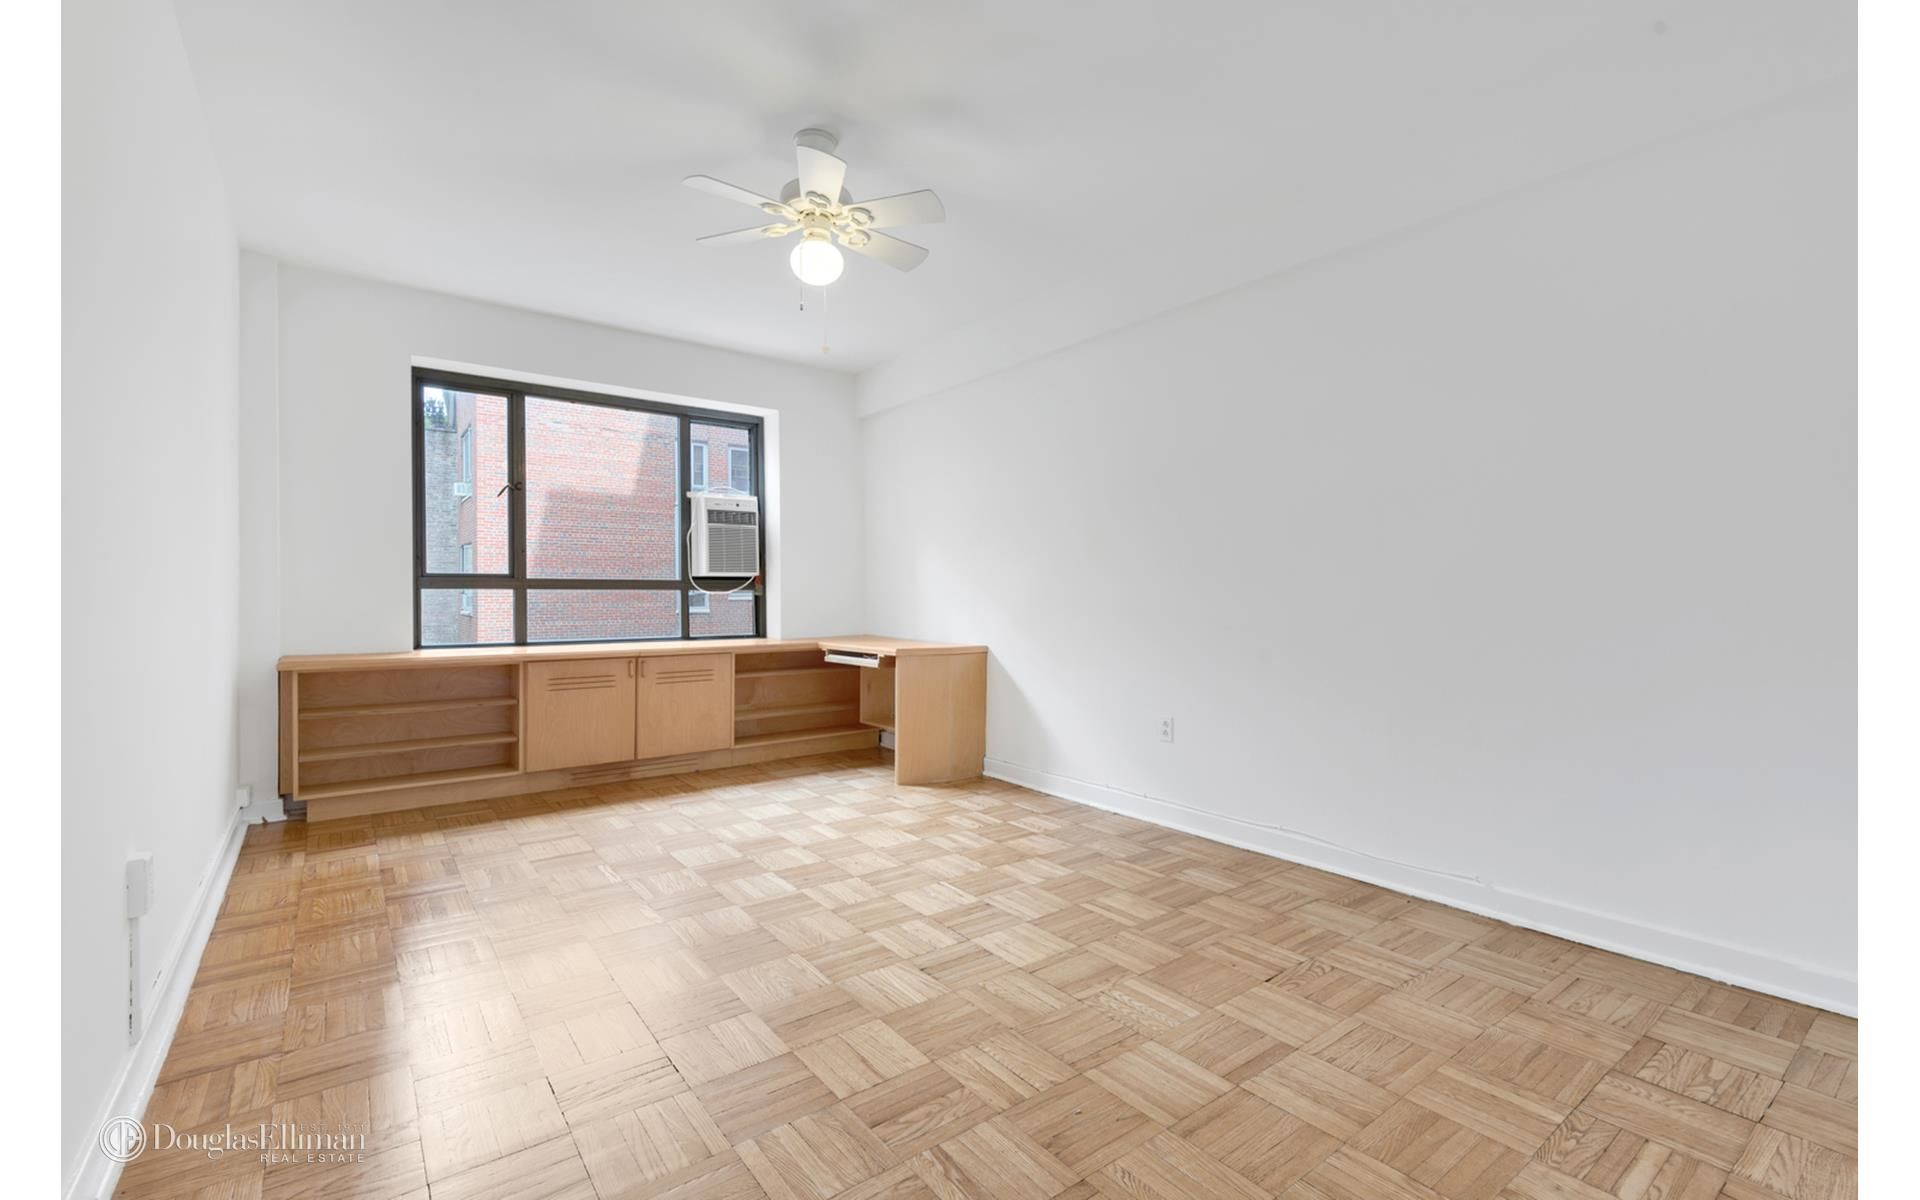 130 8th Ave, APT 2A Photo 8 - ELLIMAN-3787631